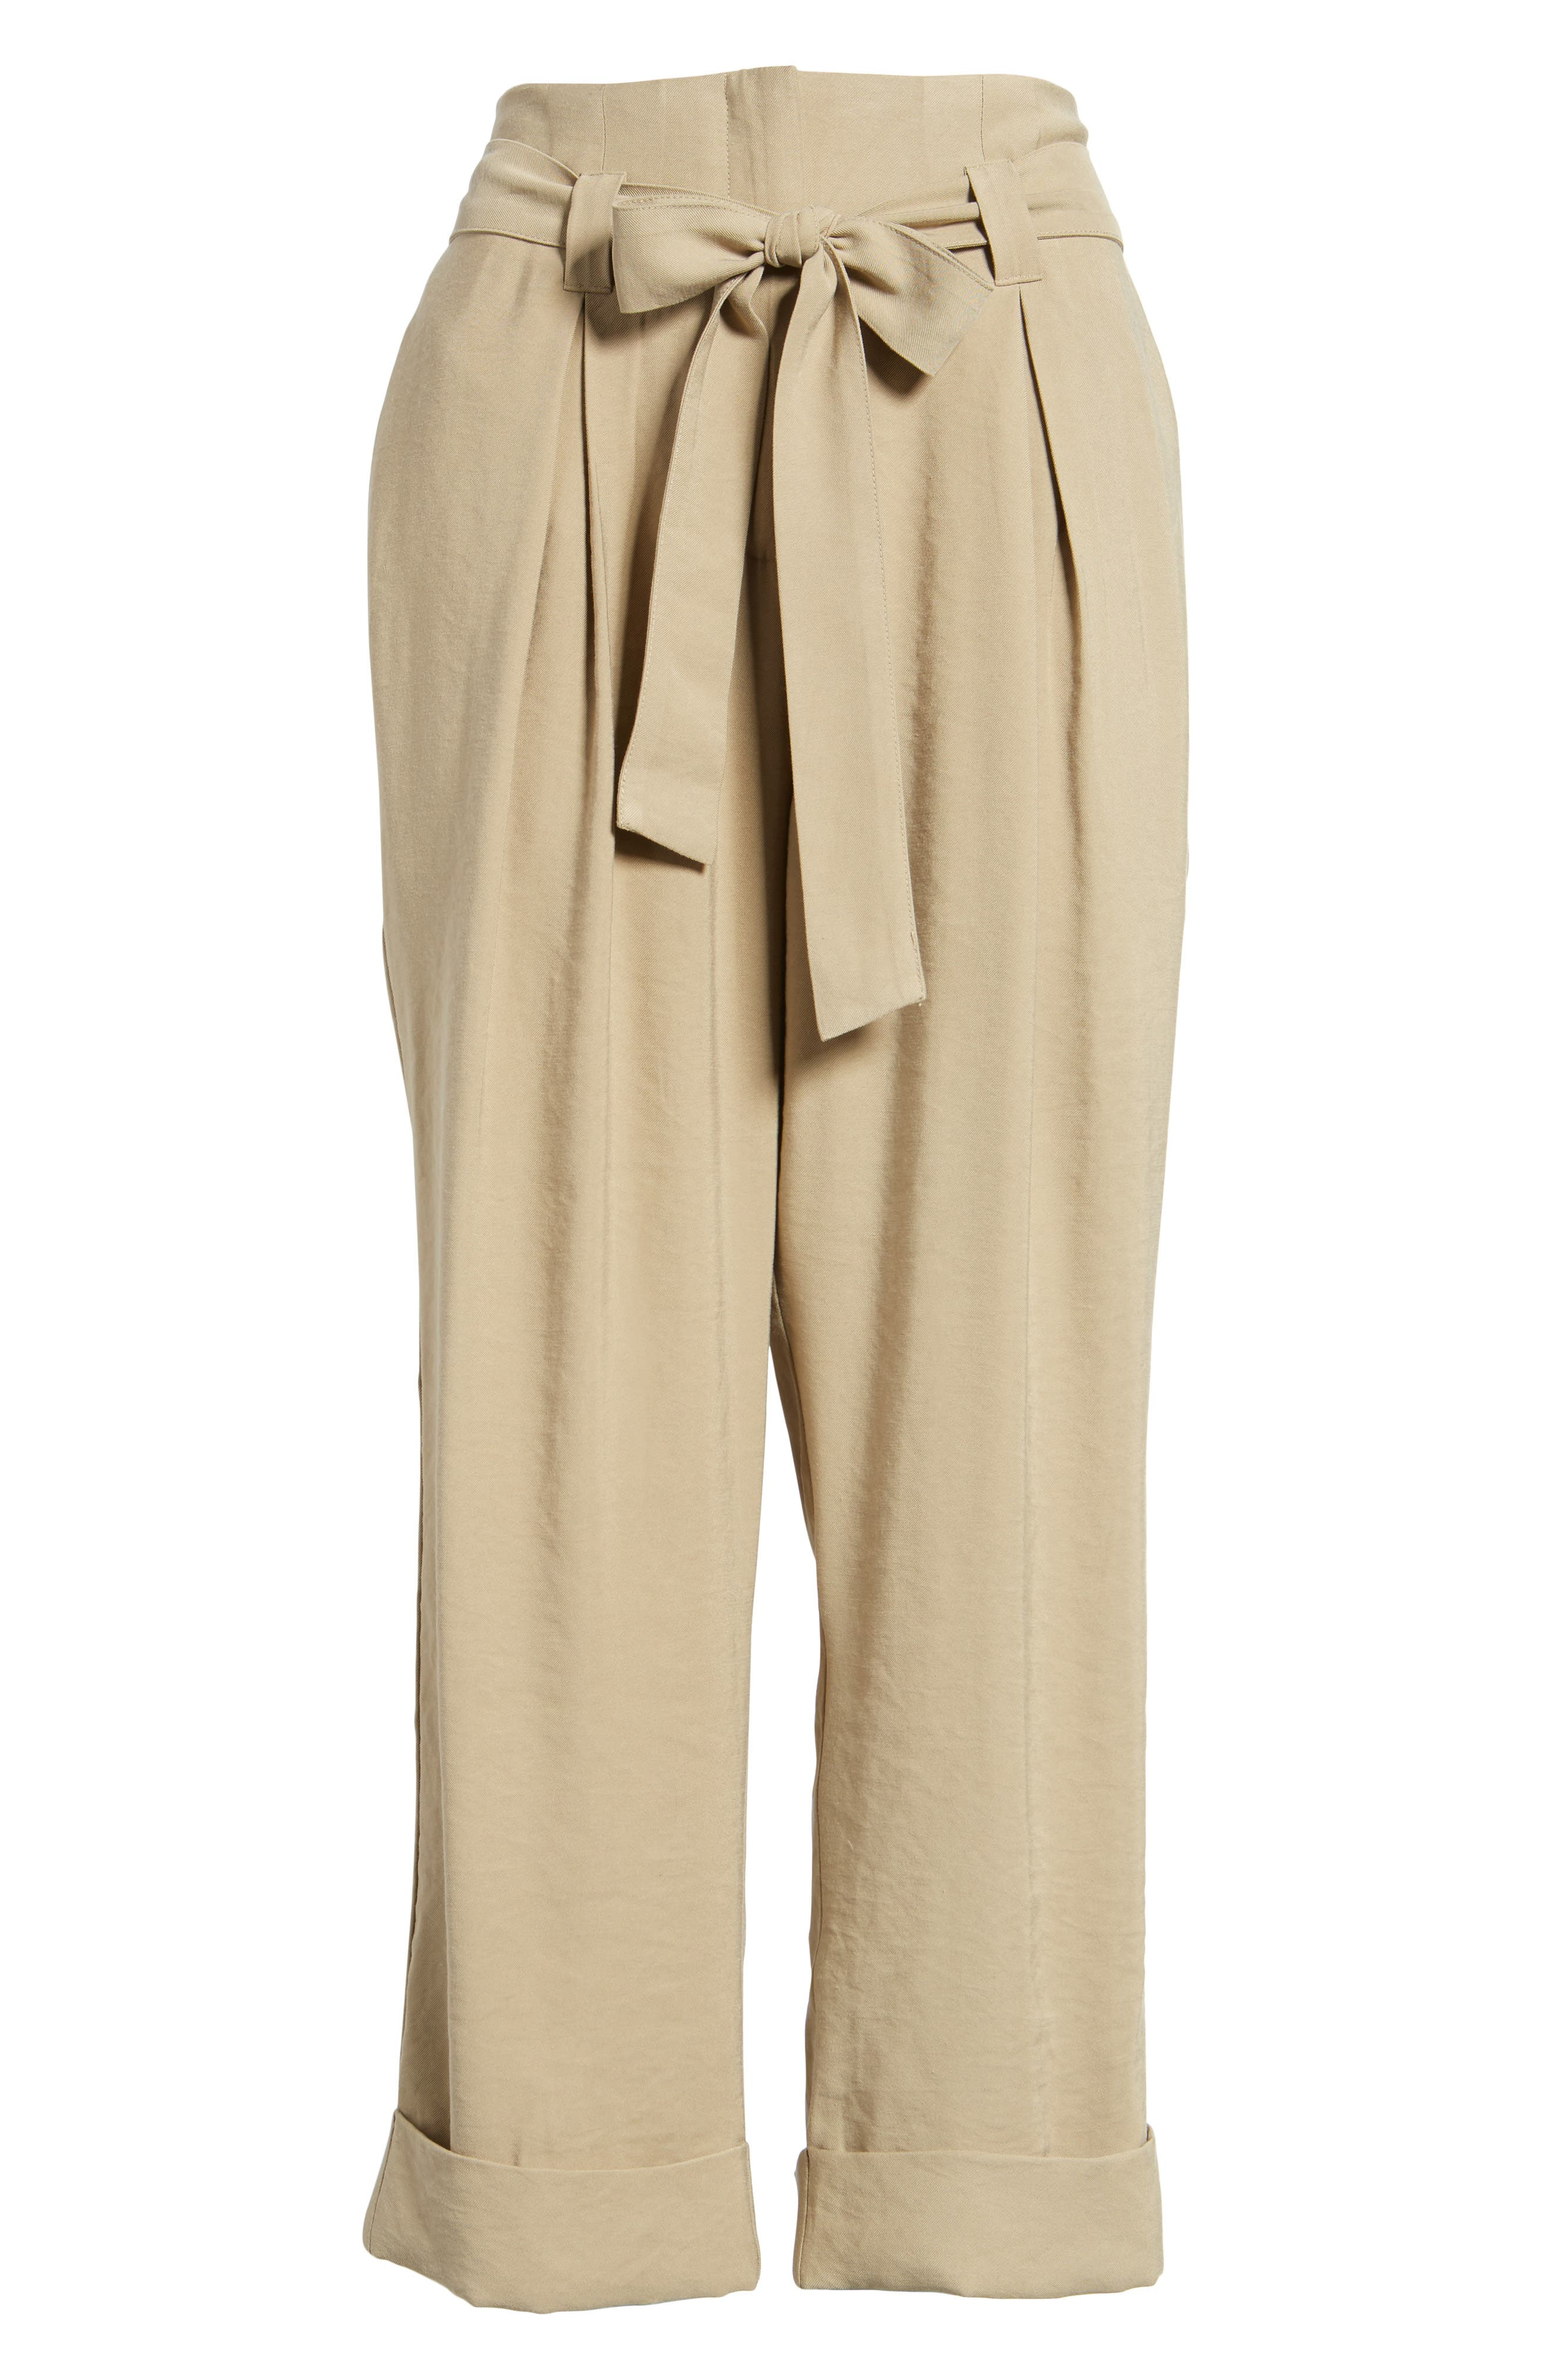 High Waist Tie Front Cropped Pants,                             Alternate thumbnail 6, color,